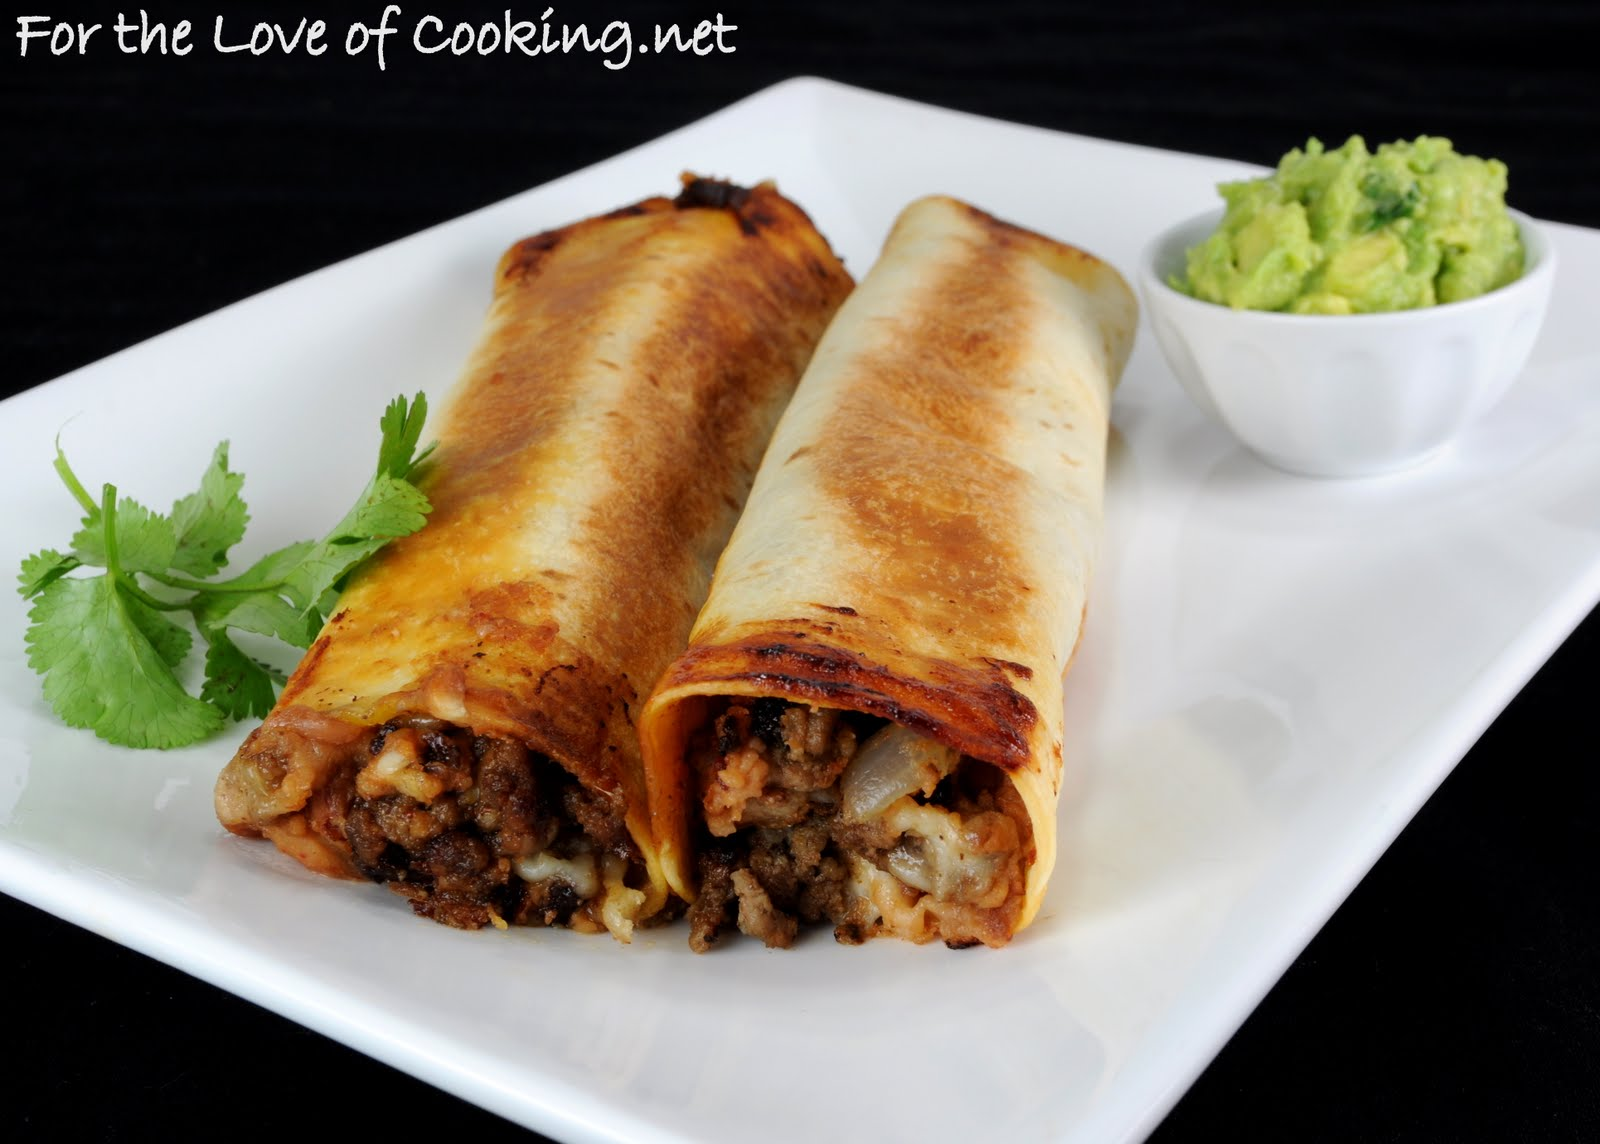 Beef, Bean, and Pepper Jack Baked Flautas | For the Love of Cooking